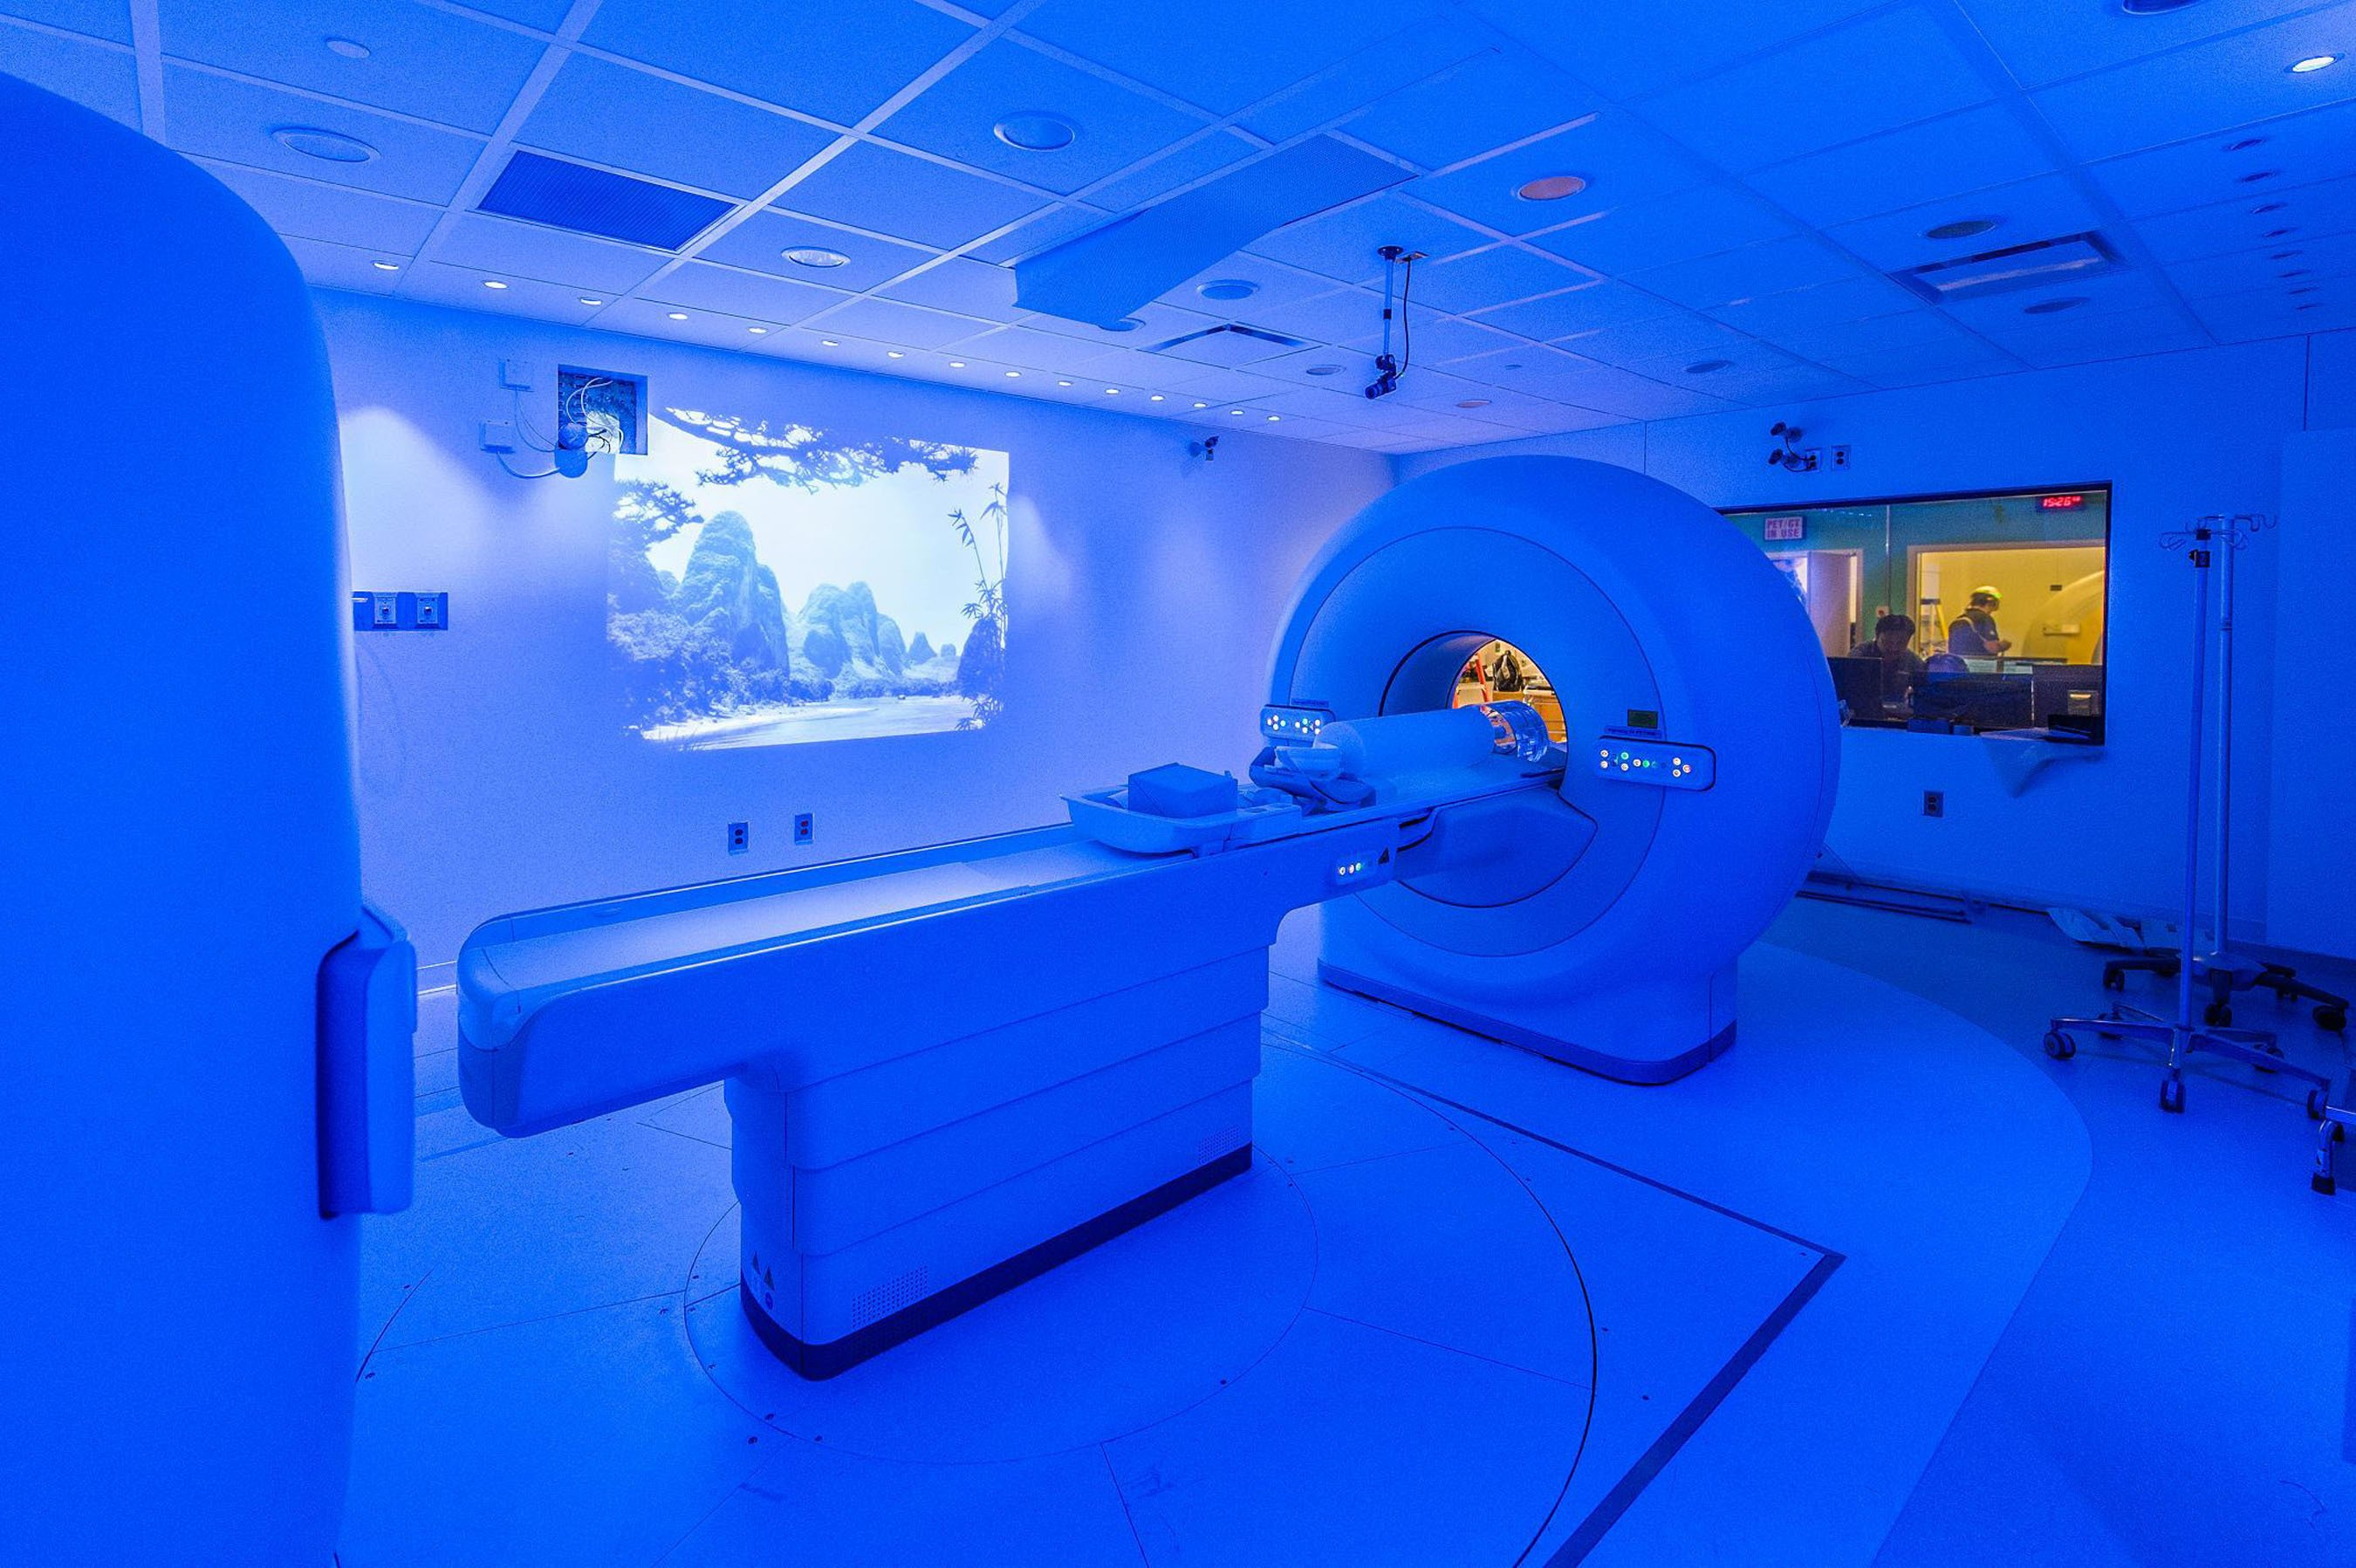 Texas Children's Hospital Offers PET/MRI Scanner to Better Diagnose Several Childhood Diseases